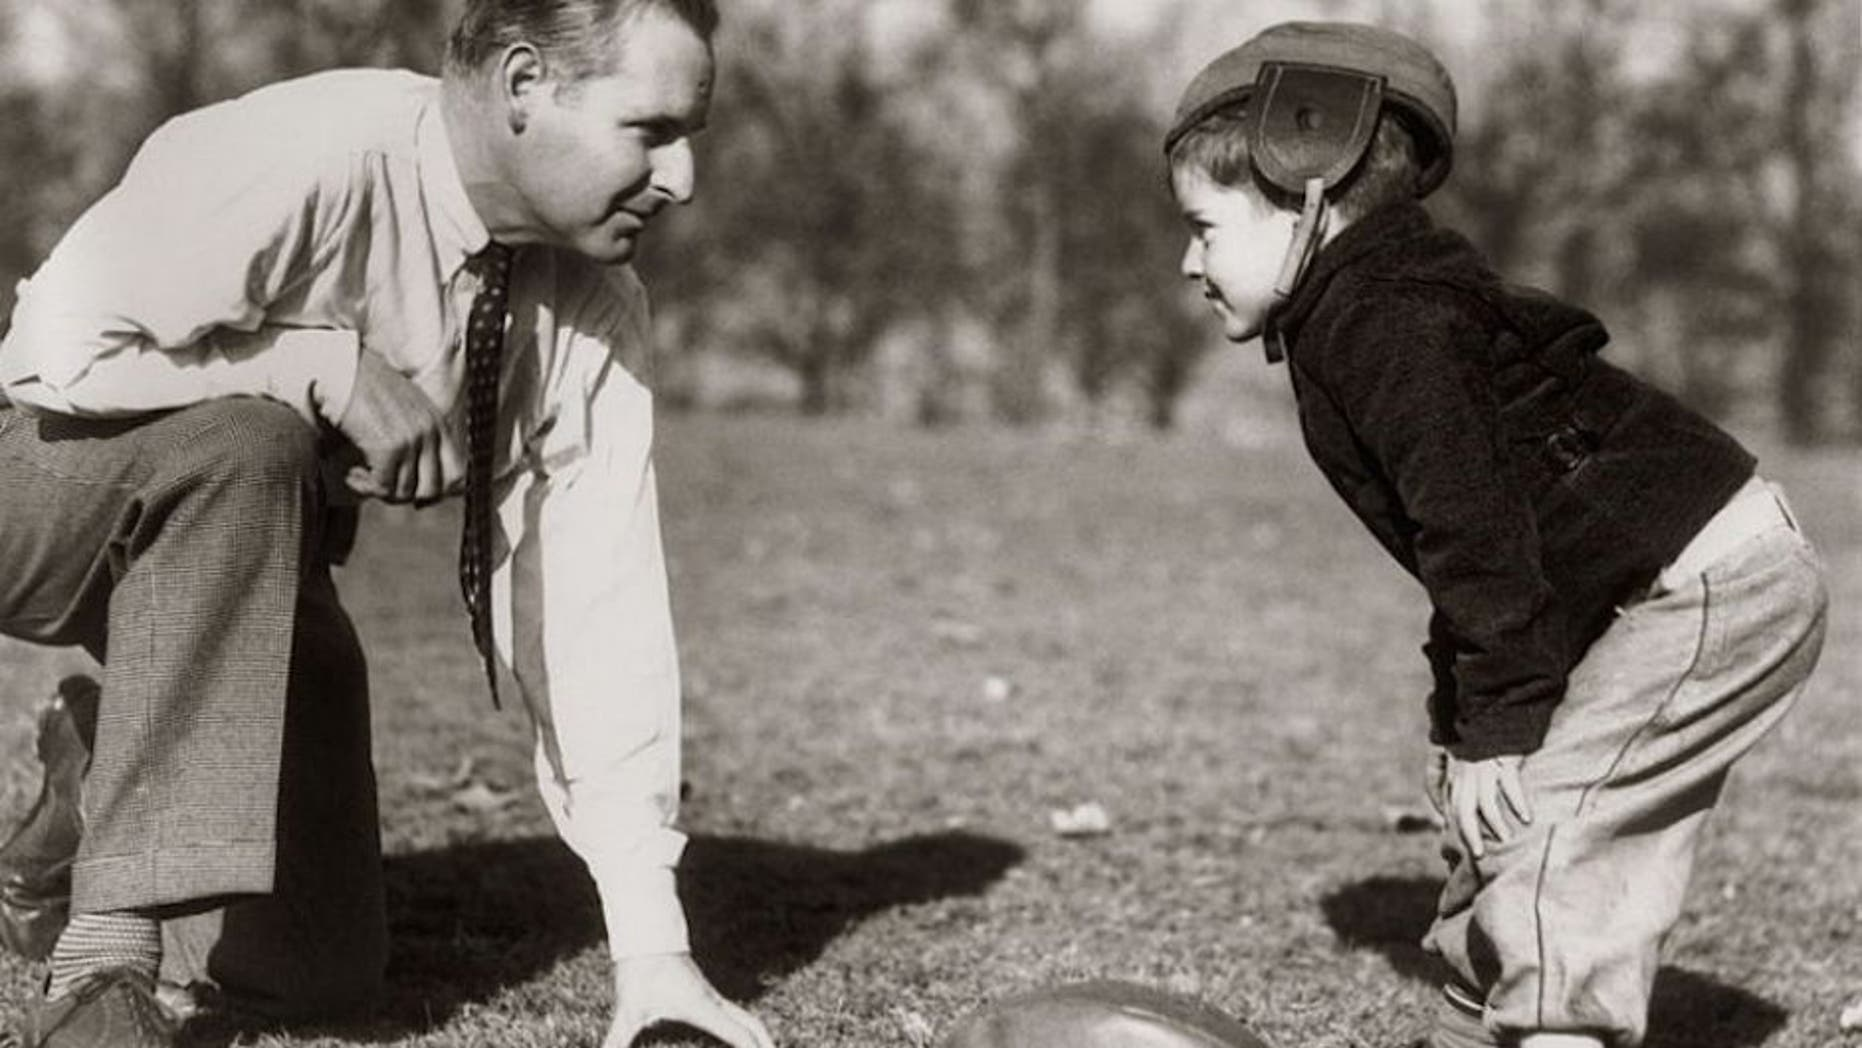 UNITED STATES - Circa 1930s: Father & Son Playing Football. (Photo by H. Armstrong Roberts/Retrofile/Getty Images)